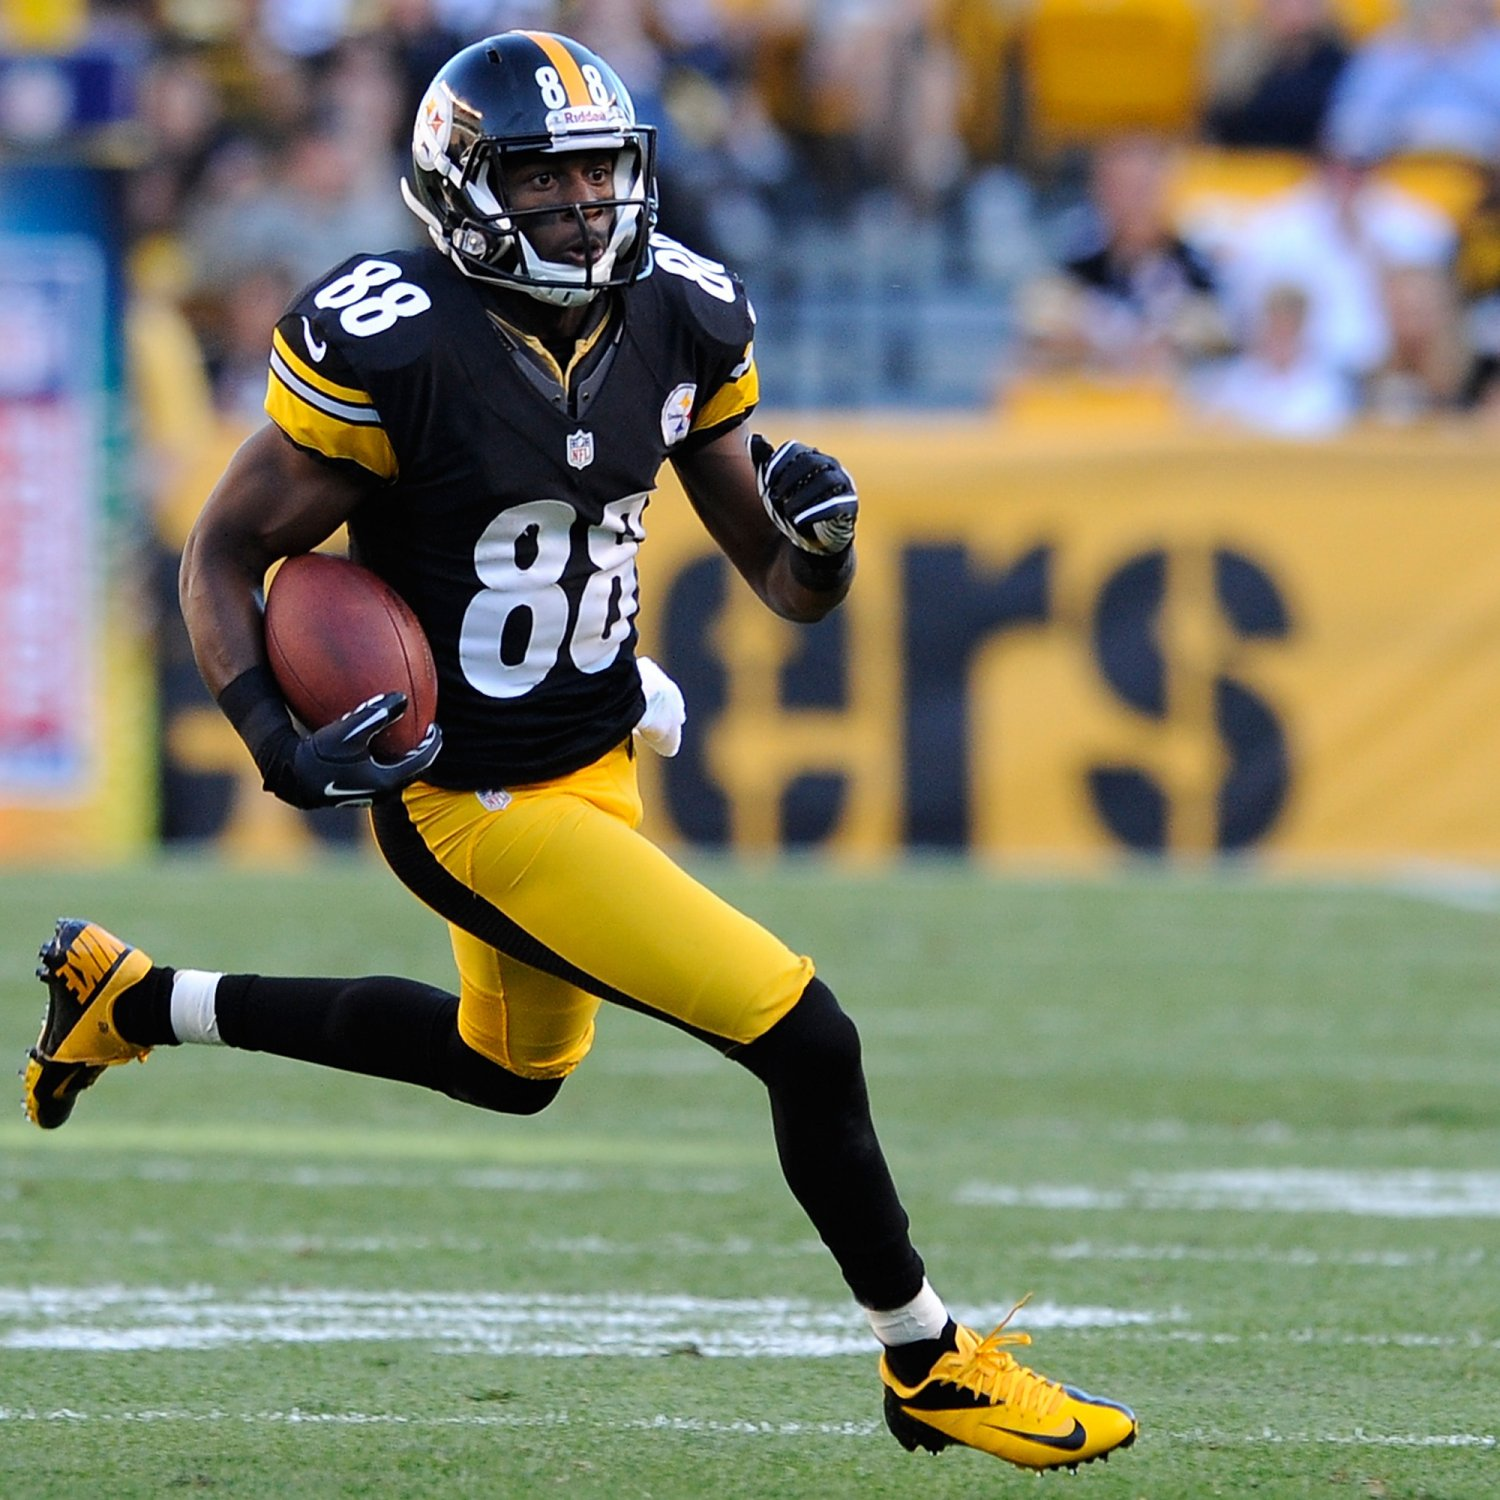 Steelers WR Breakdown: Complete Position Evaluation And